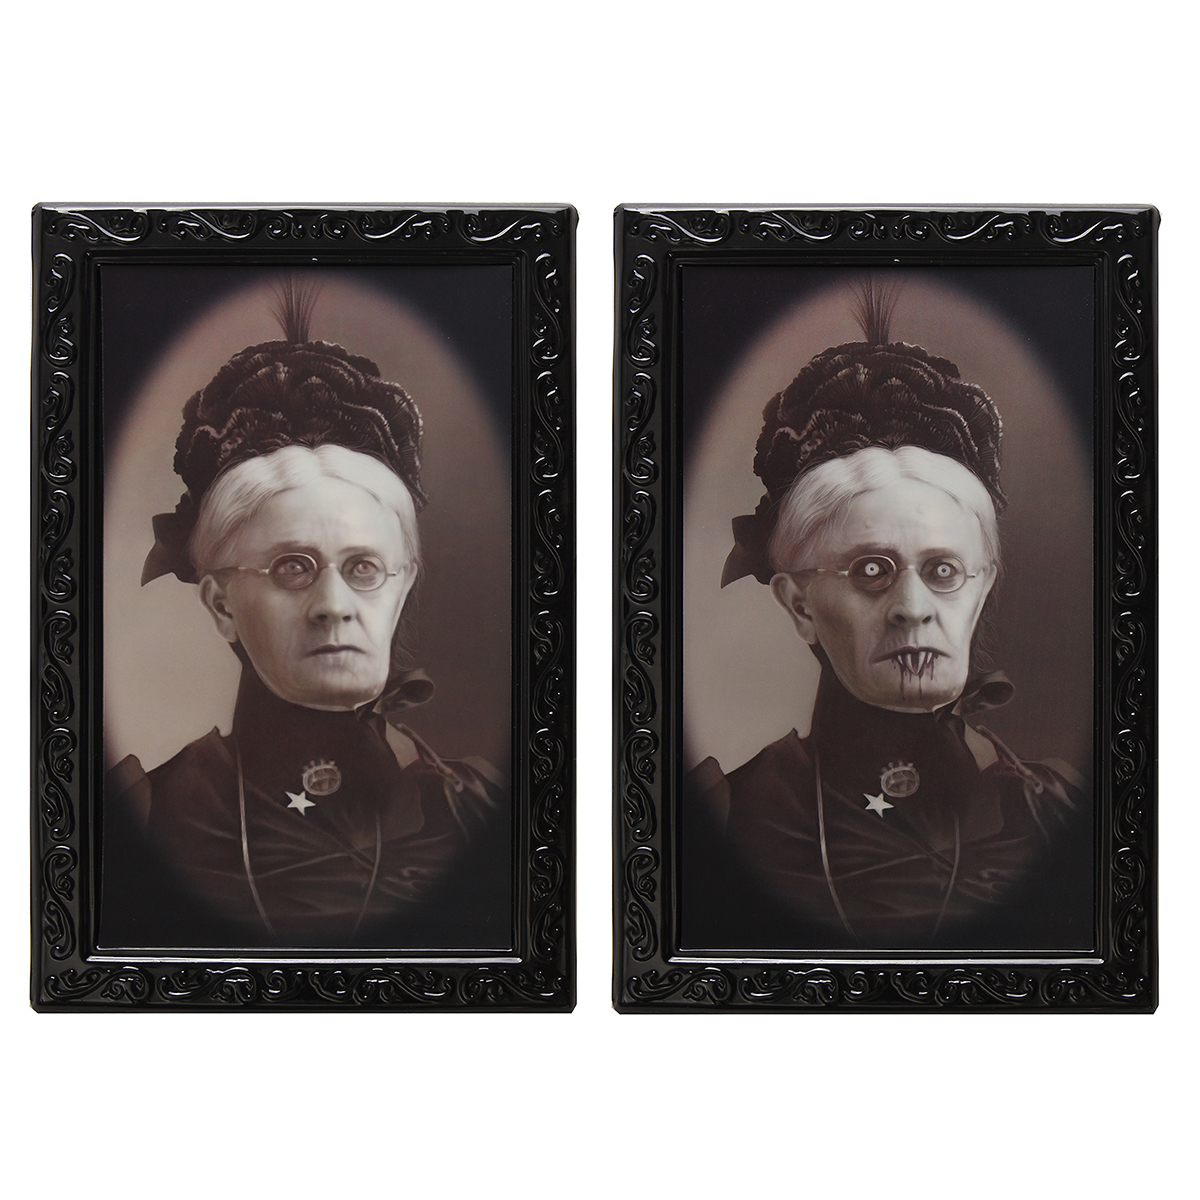 Hallowmas Lenticular 3D Changing Face Horror Portrait Haunted Spooky Decorations - Photo: 1